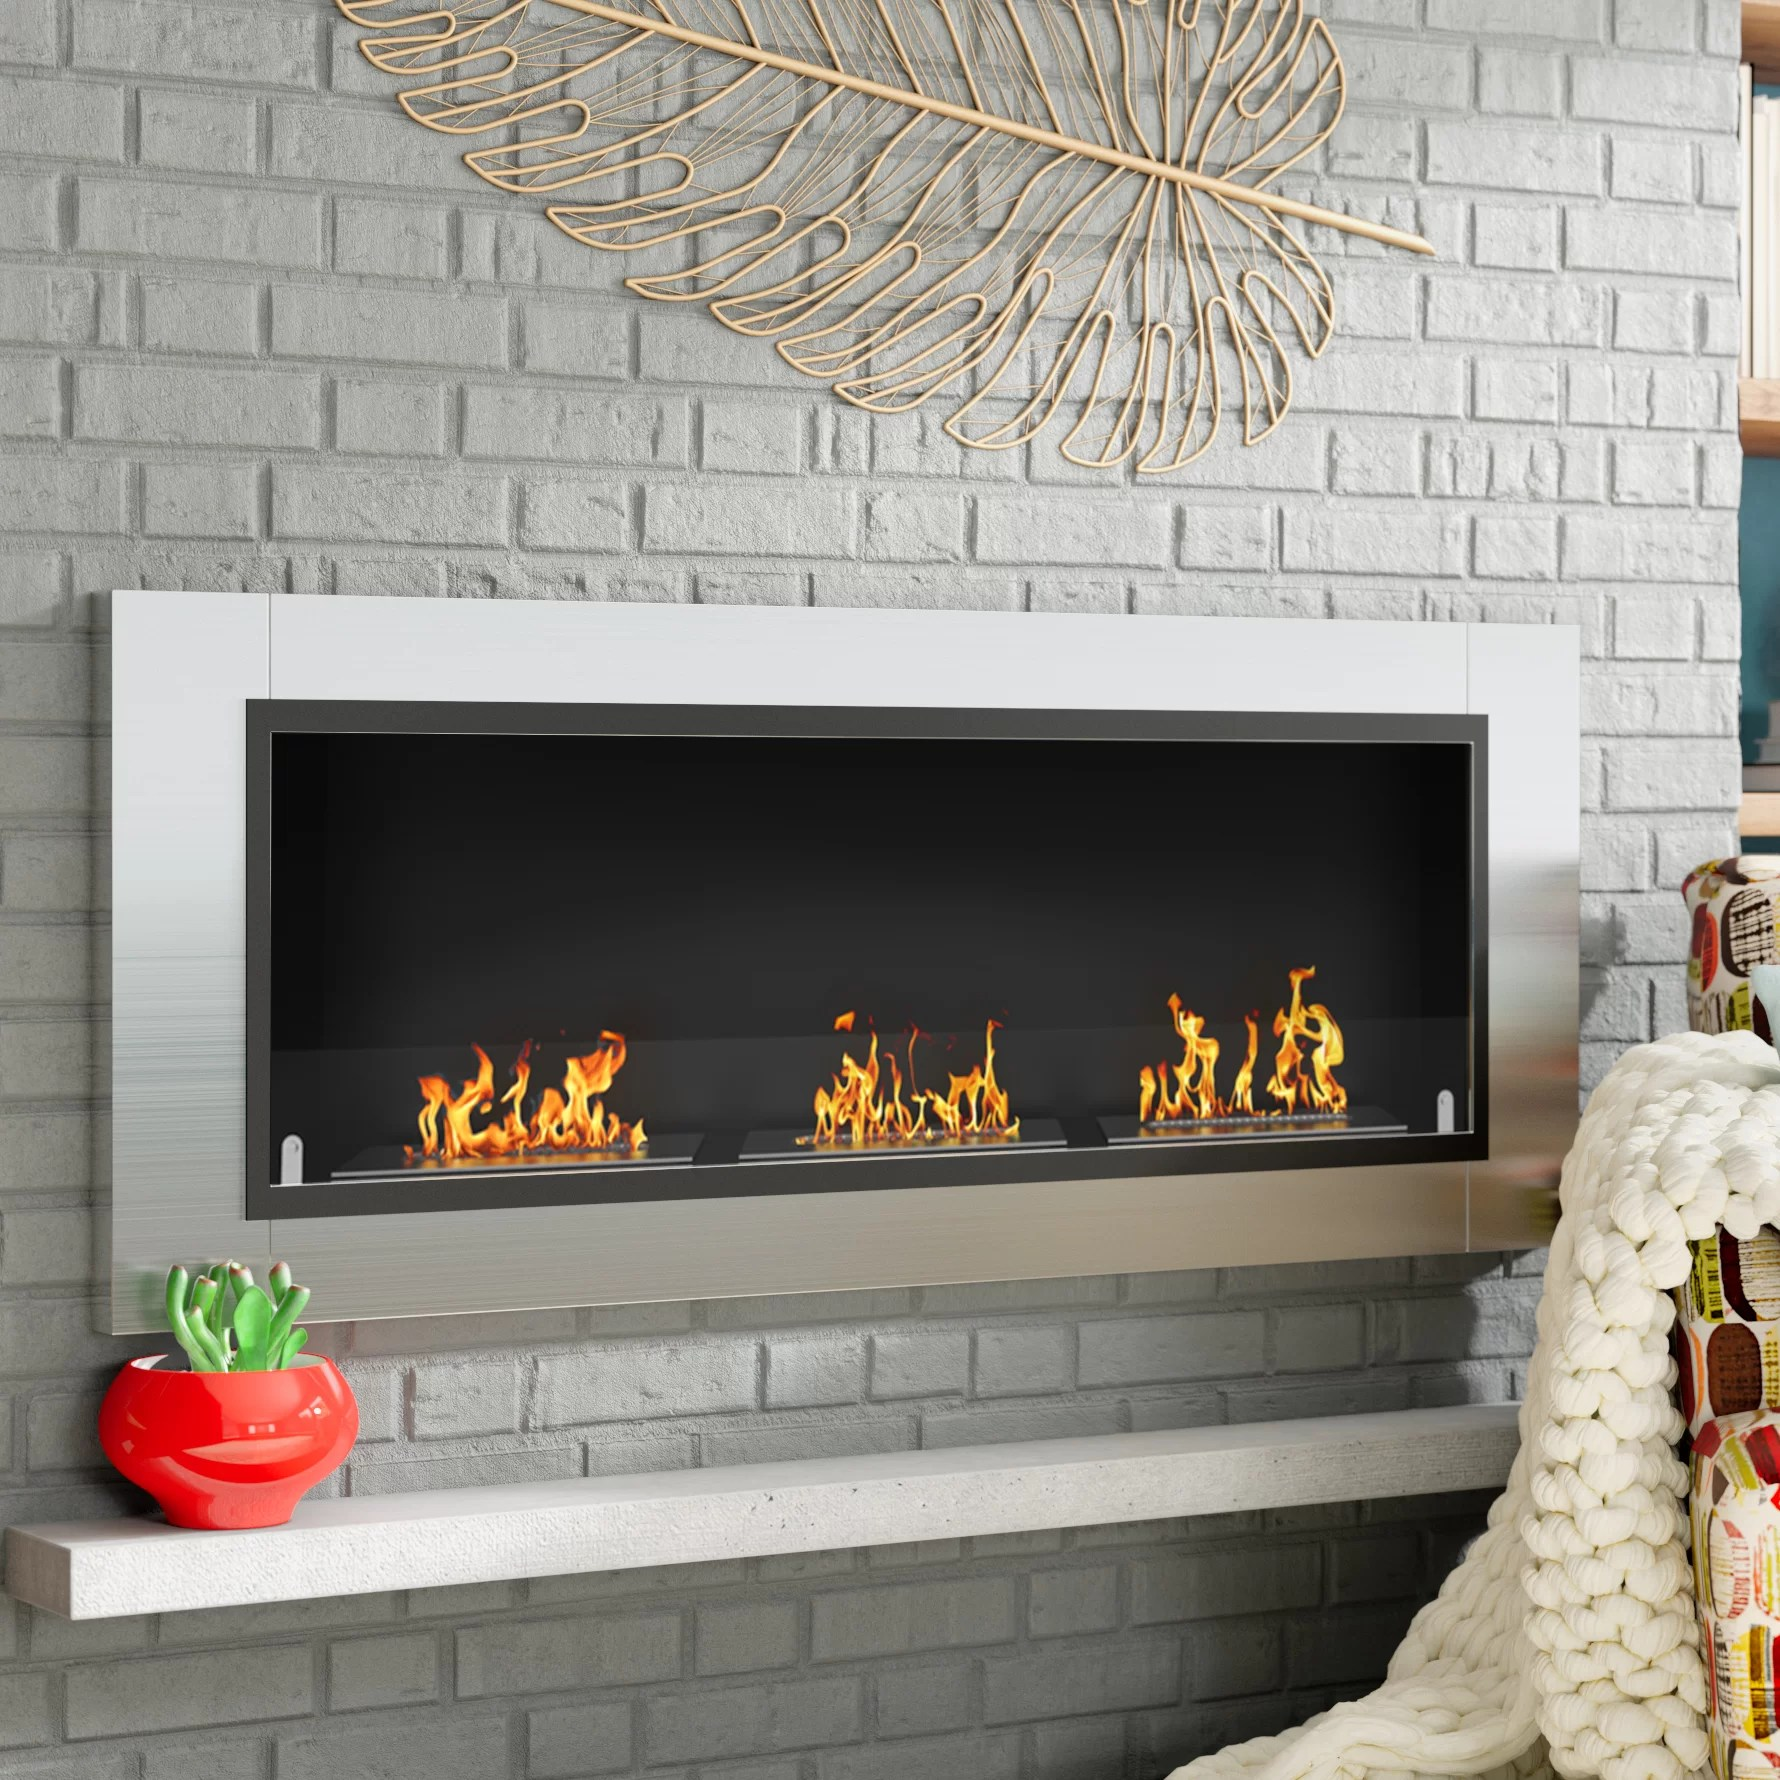 Wall Mount Fireplaces Kelling Ventless Recessed Wall Mounted Bio Ethanol Fireplace